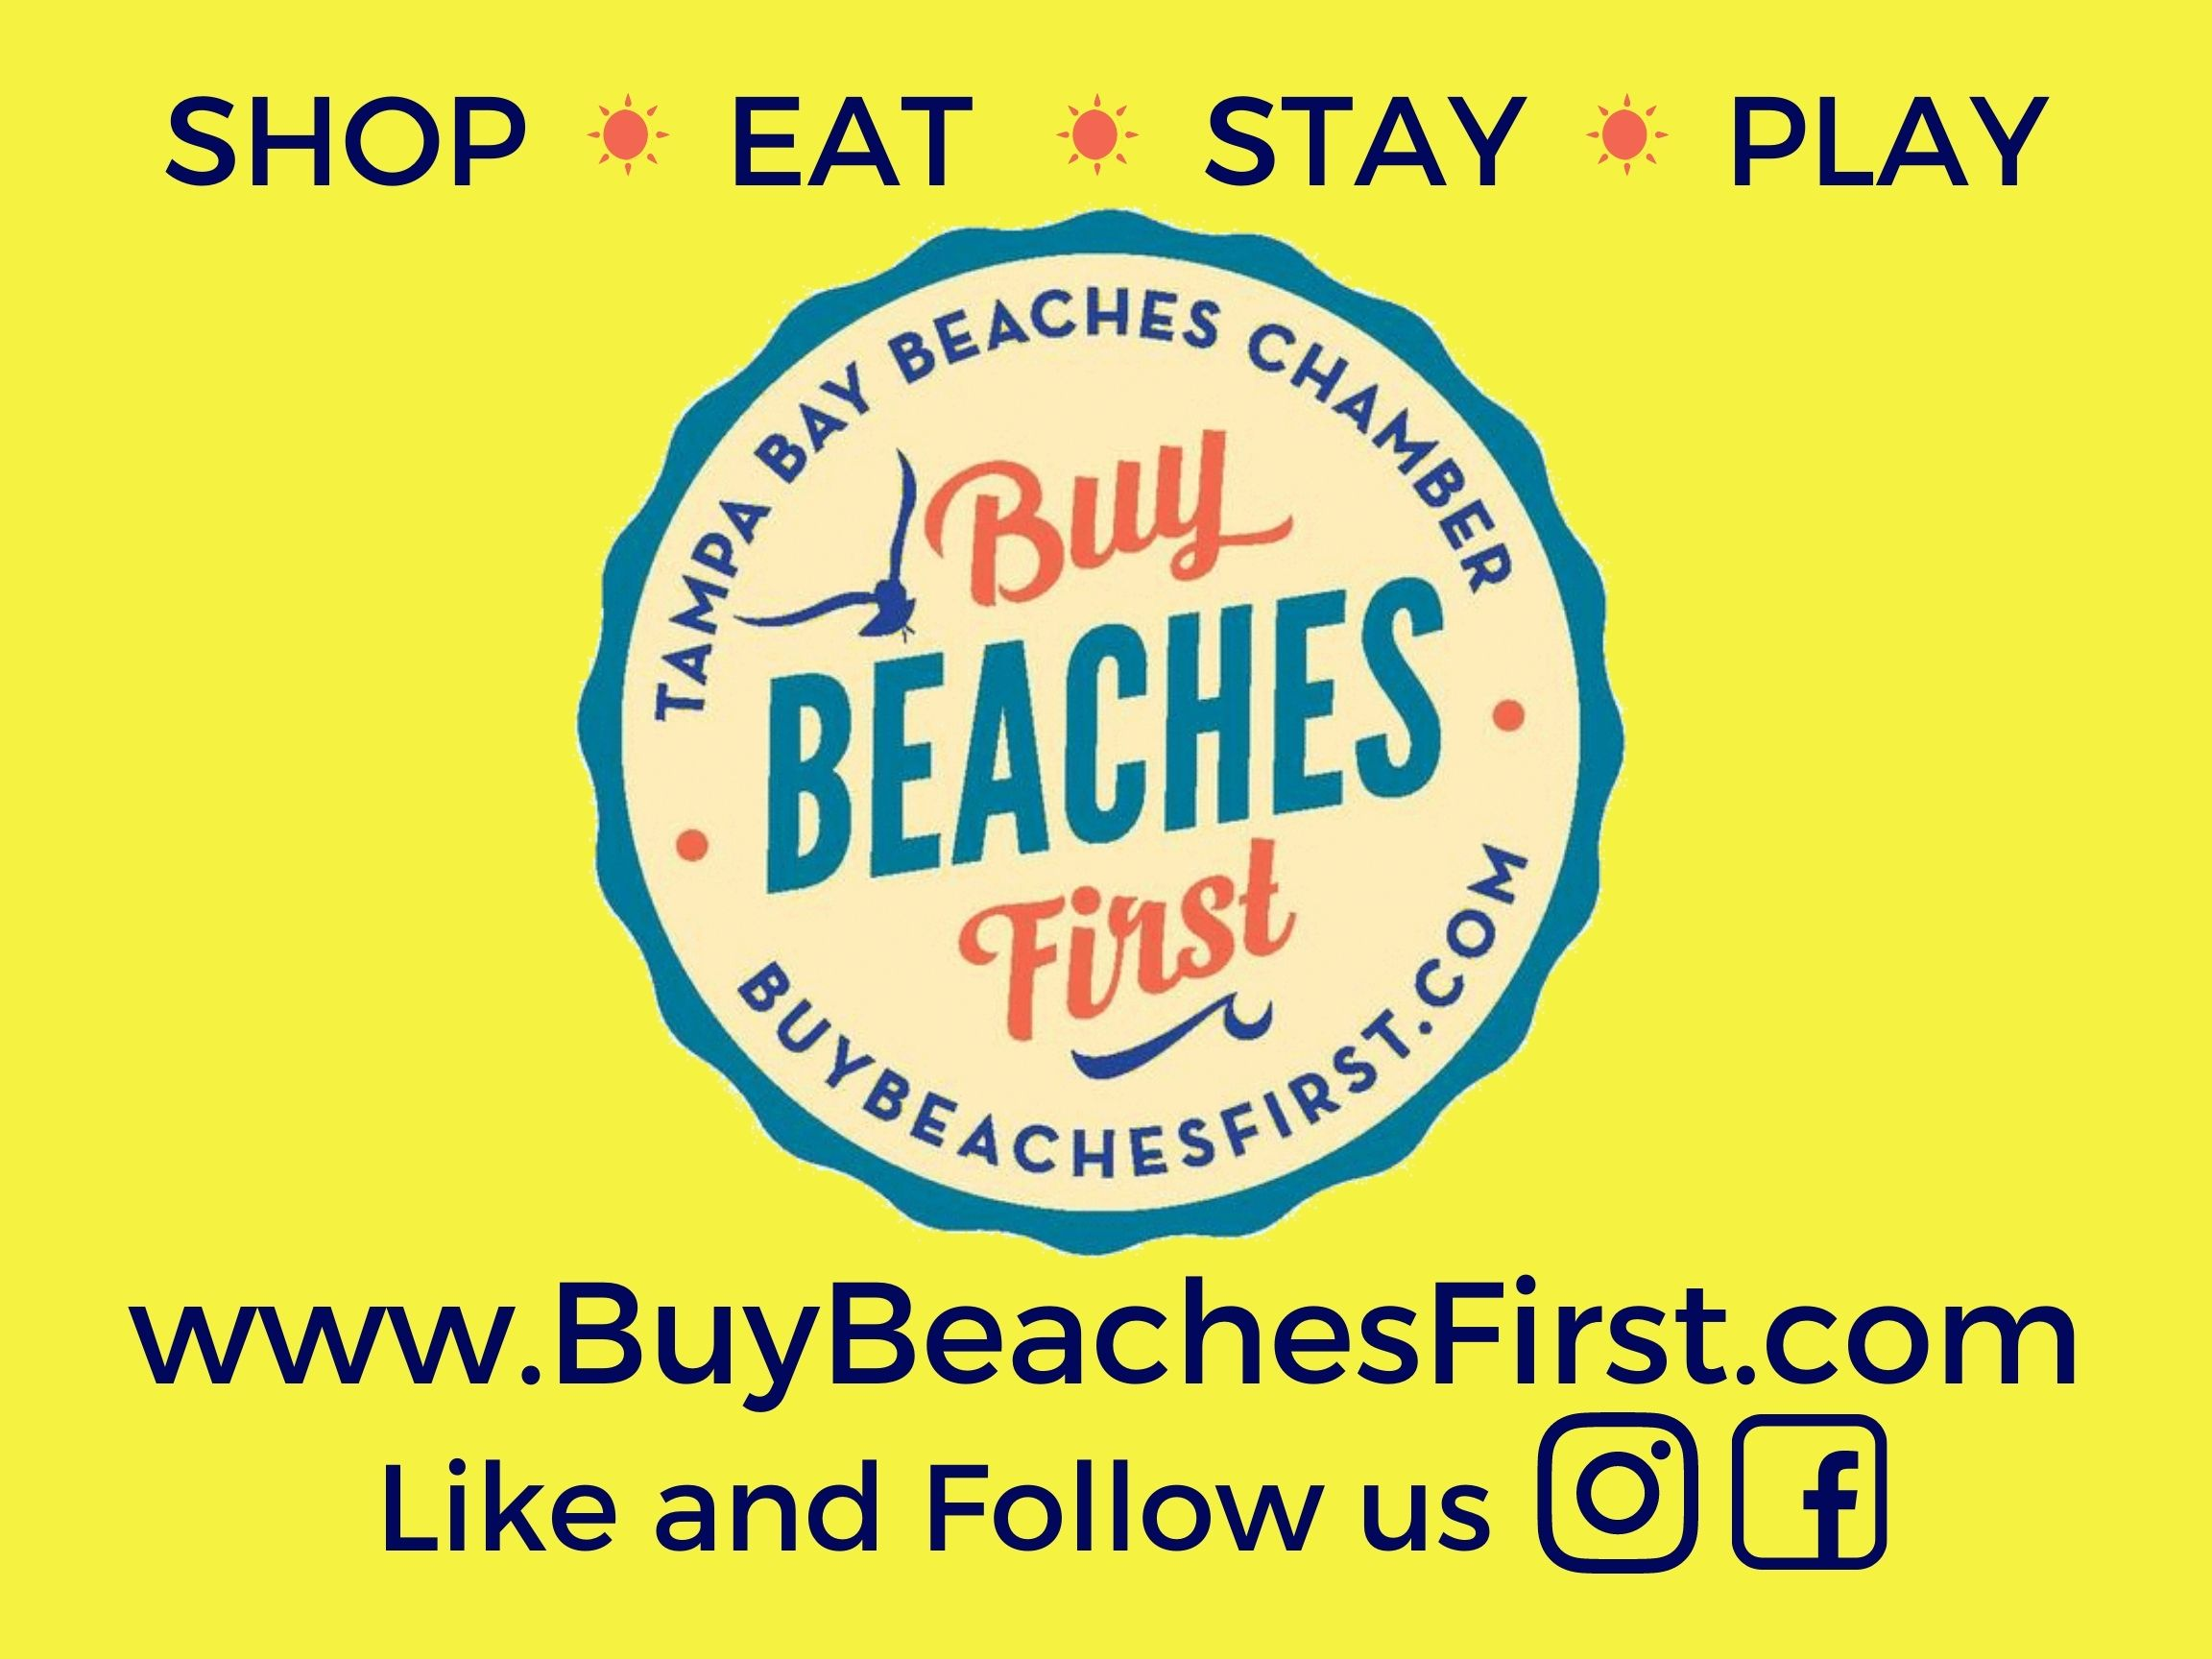 Buy Beaches First Brightens Up Gulf Boulevard